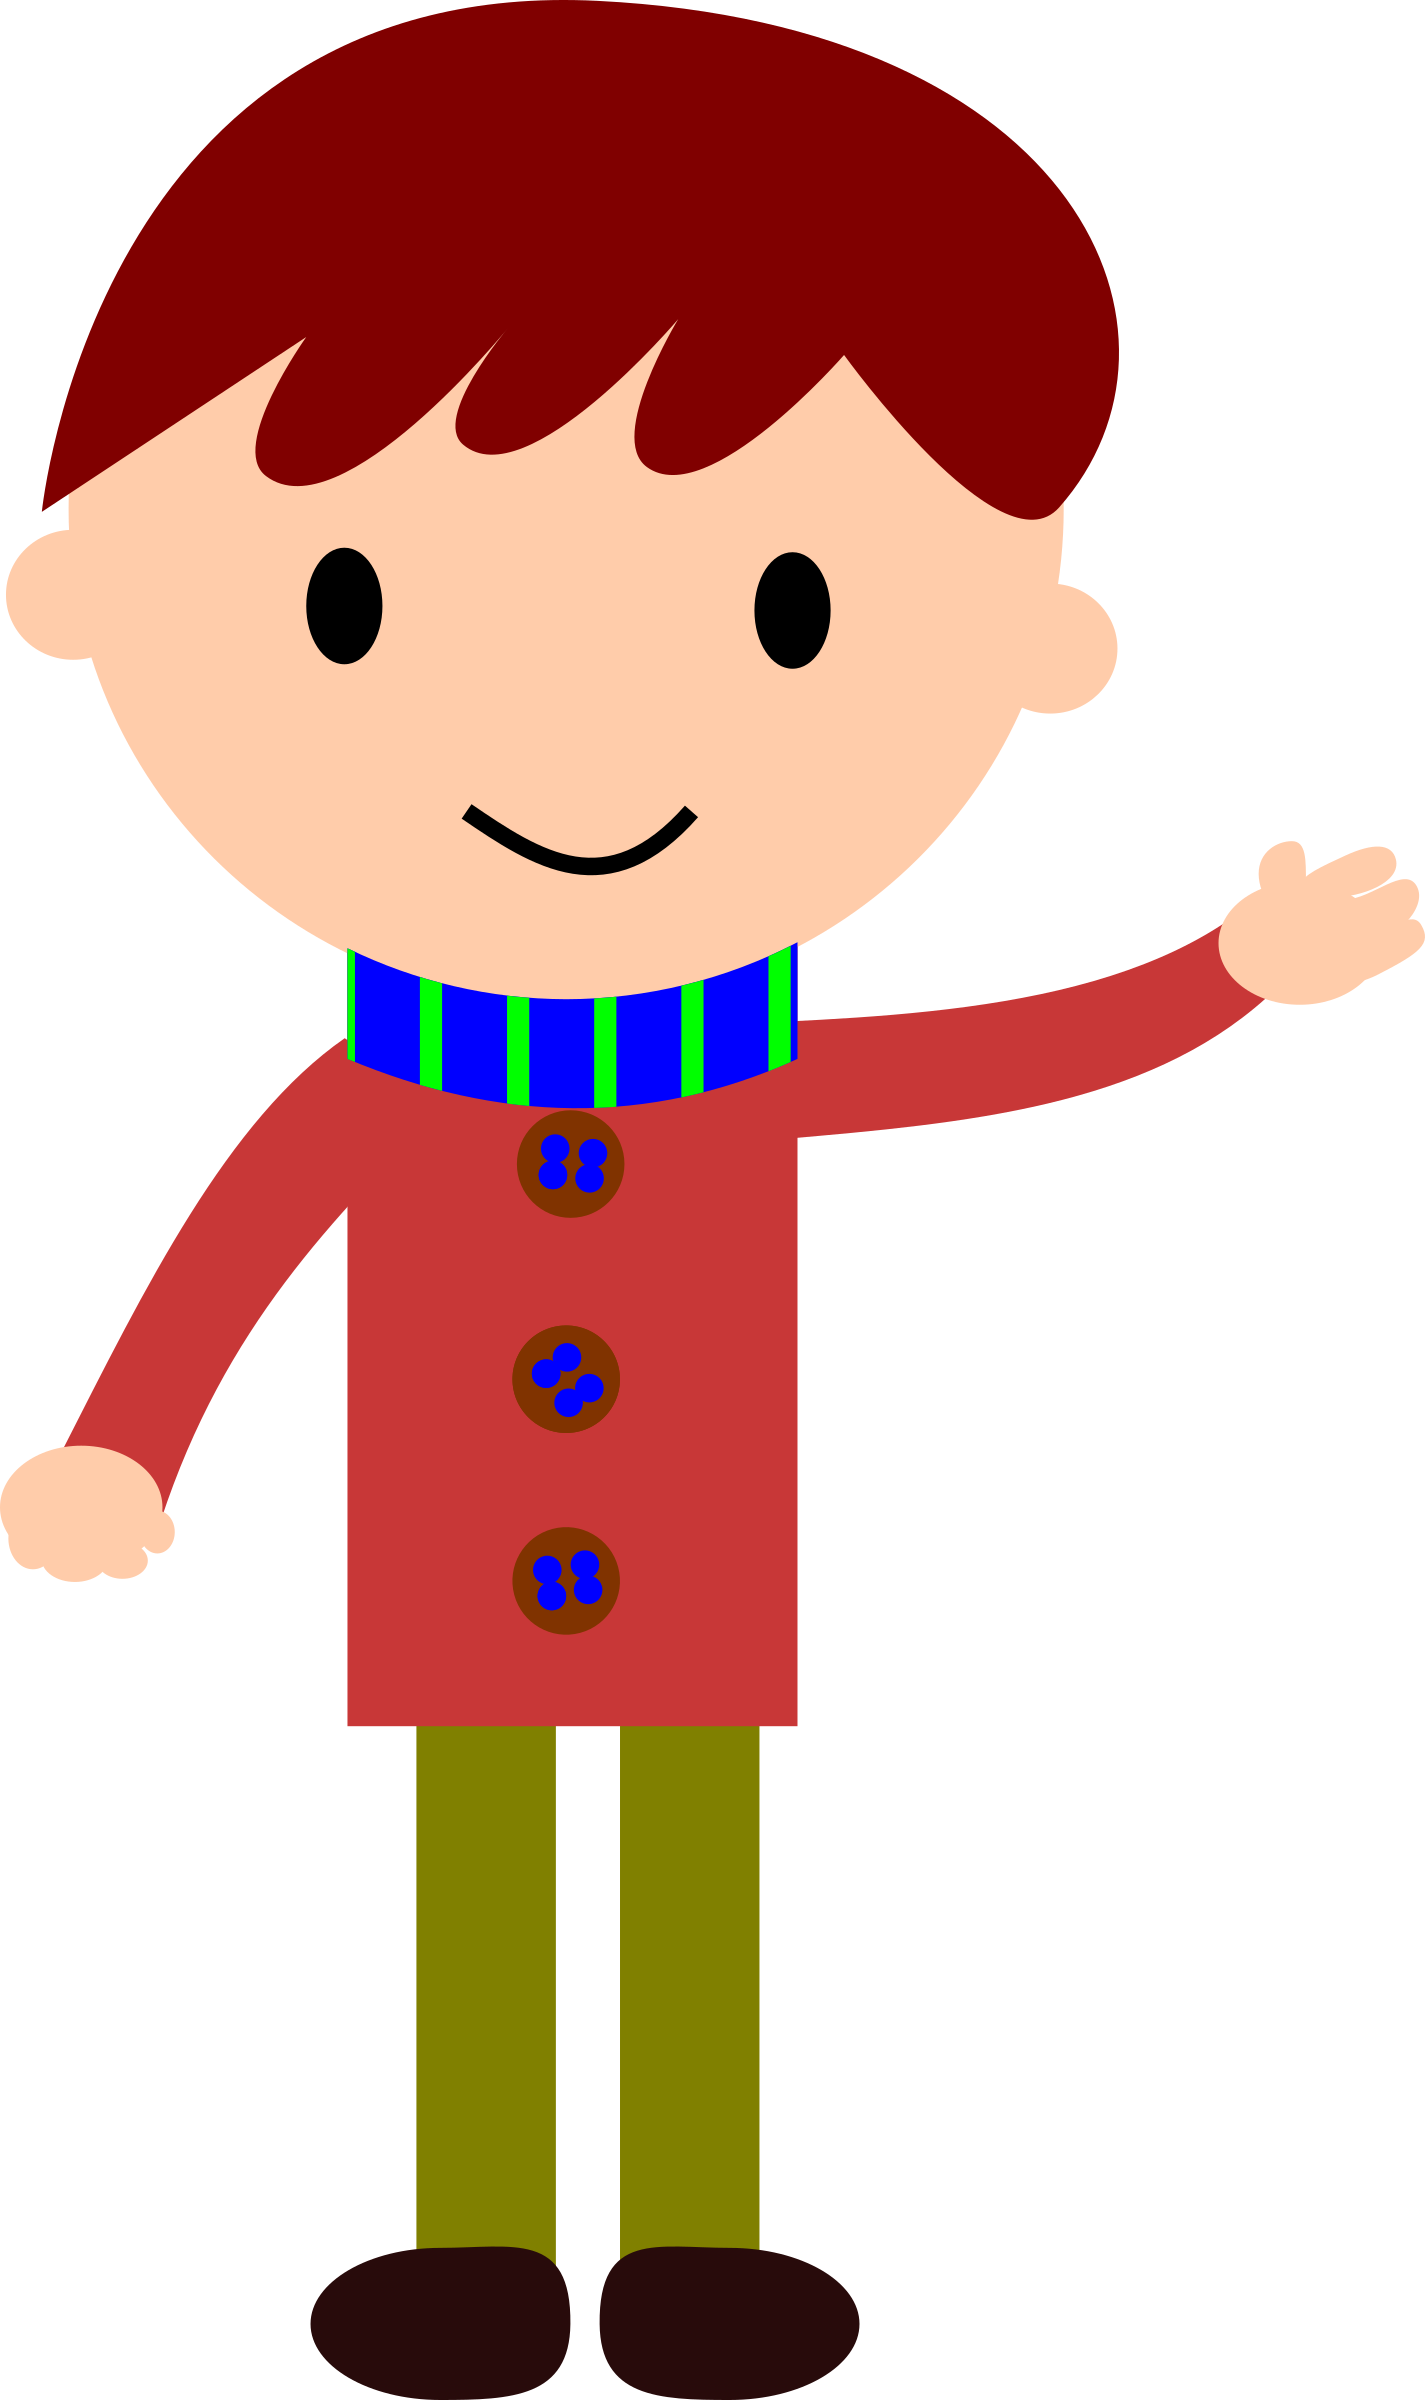 Clipart anchor kid. Pin by dhiraj on